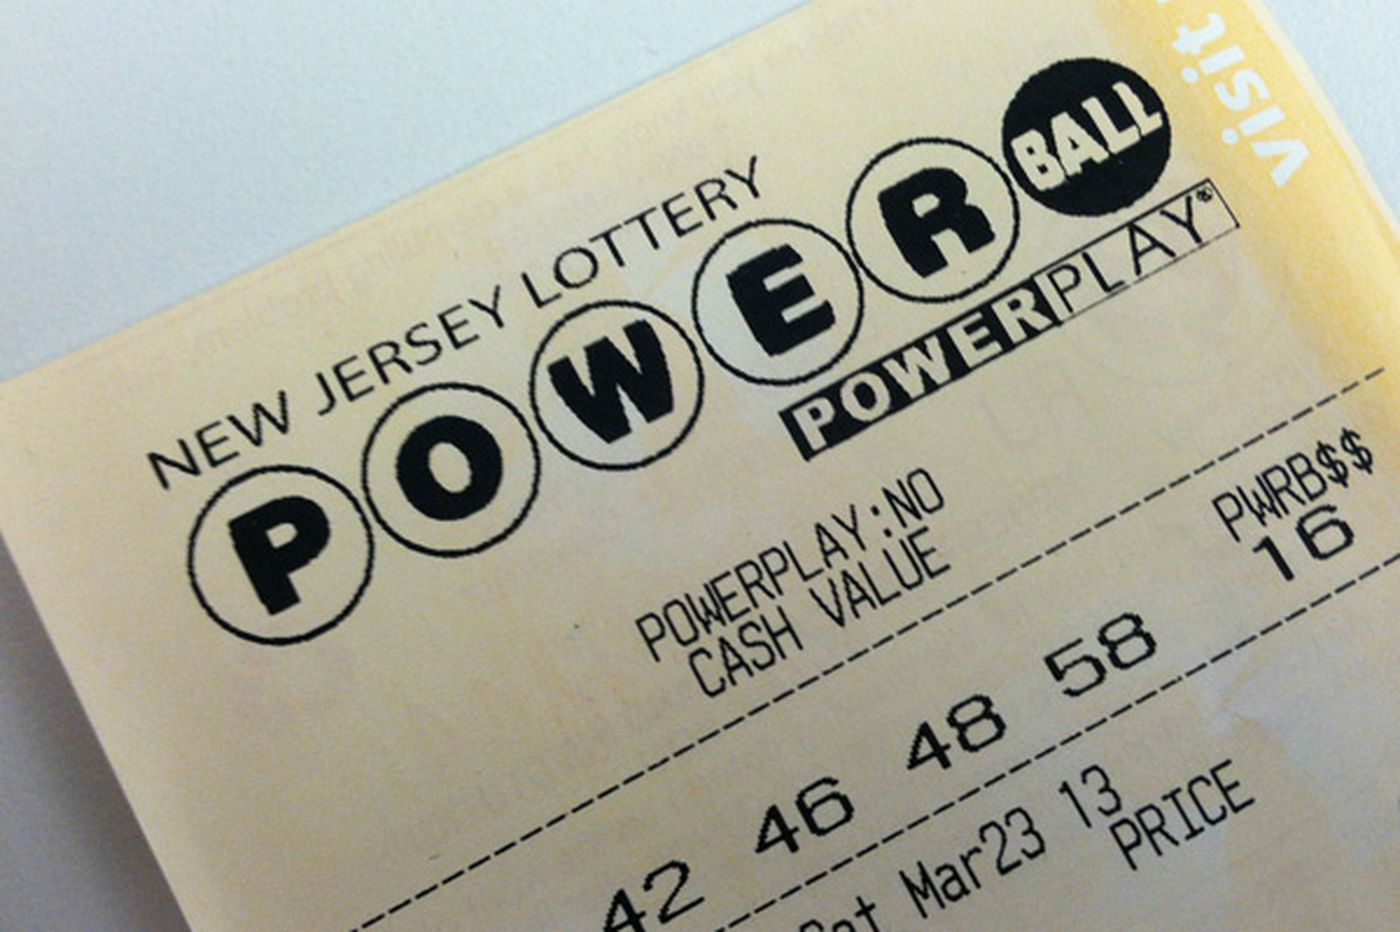 Powerball jackpot up to $350 million